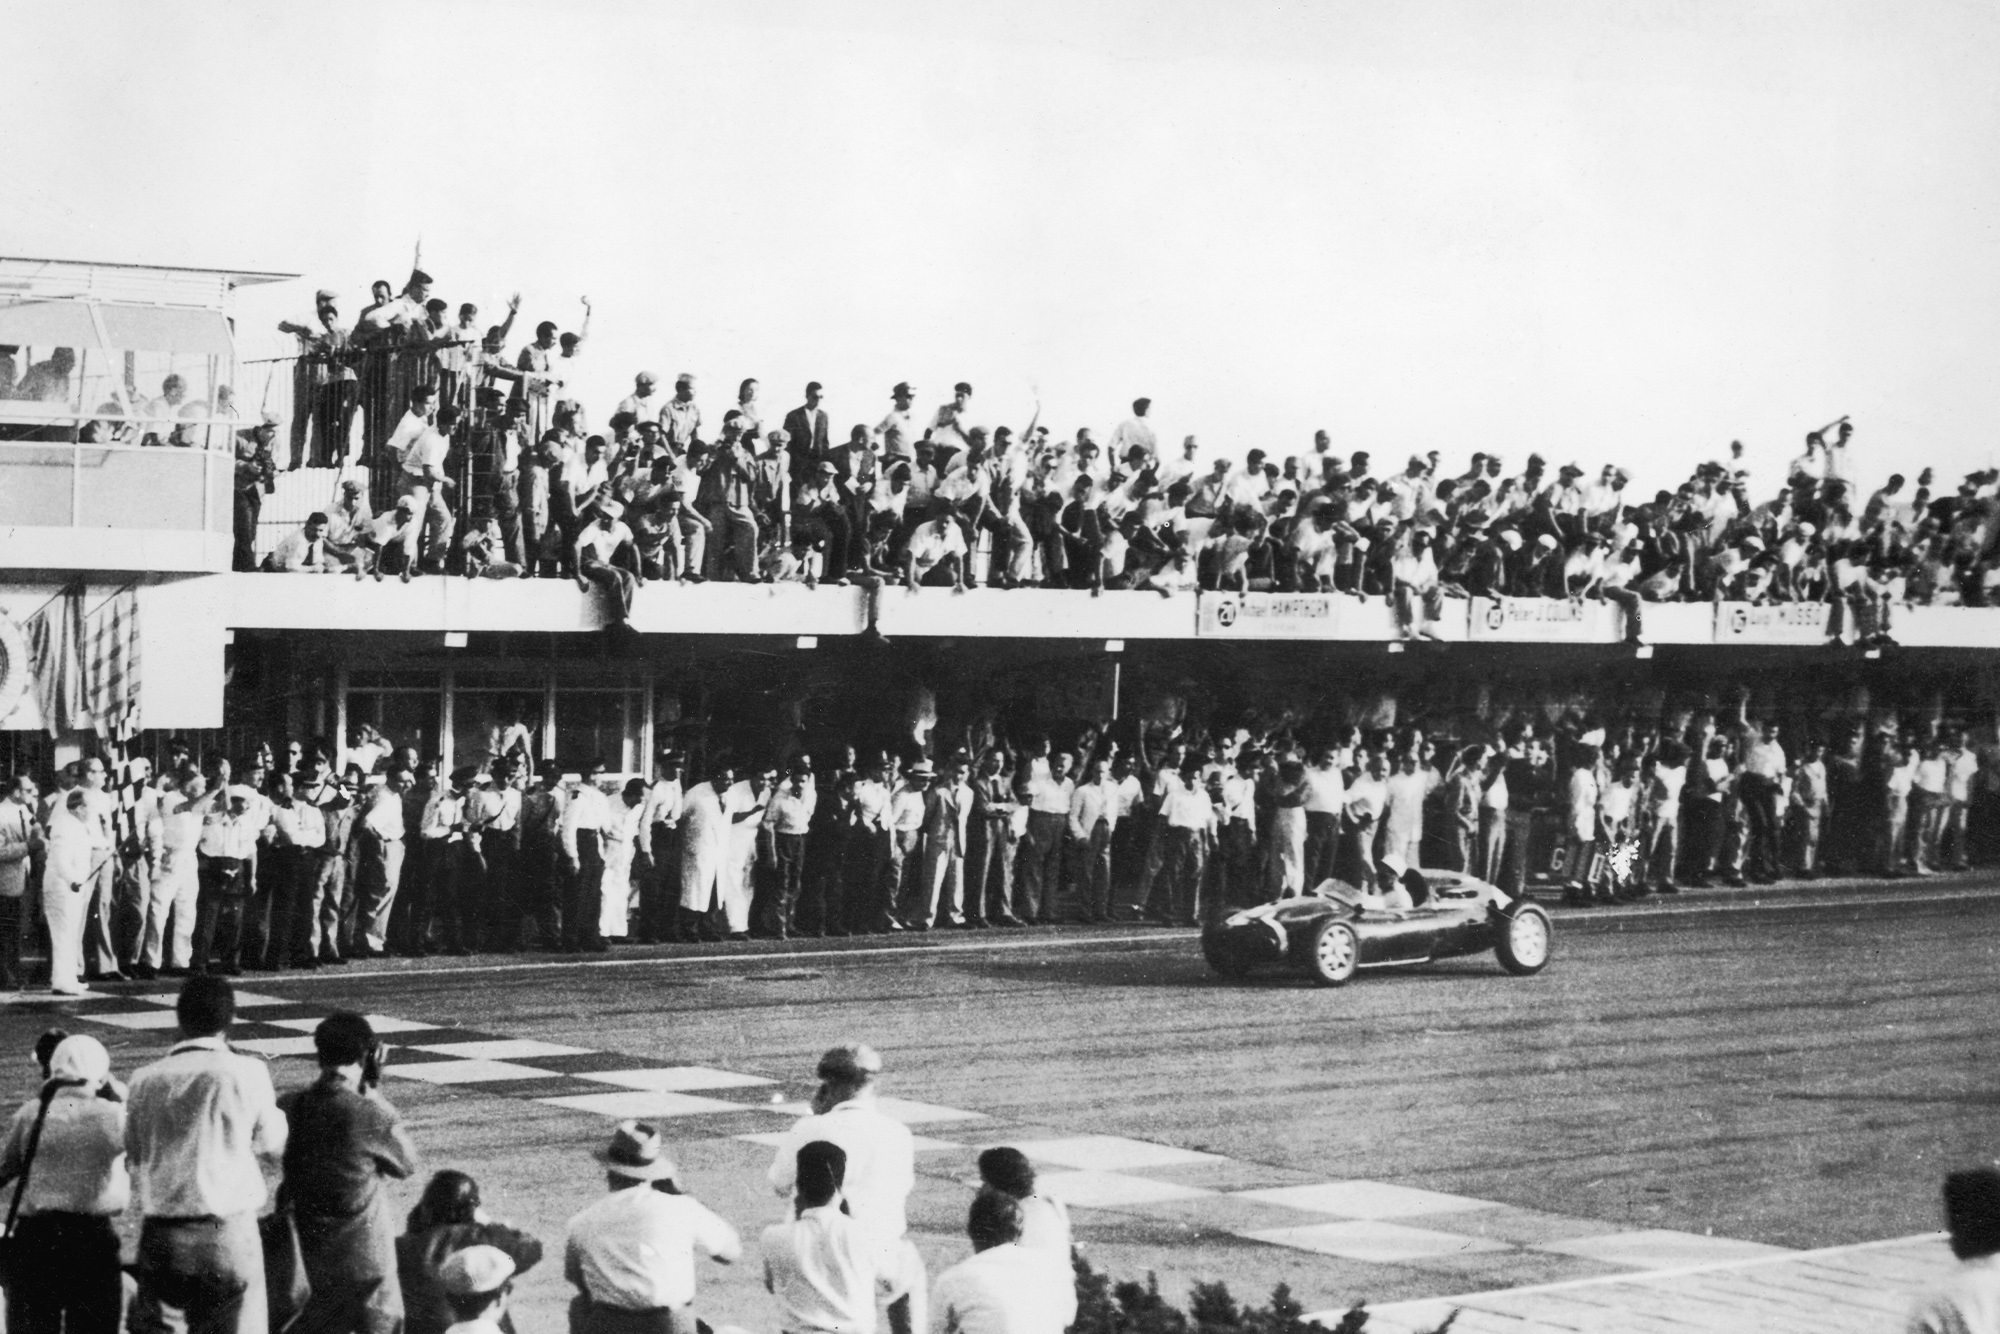 Stirling Moss crosses the finish line to win the 1958 Argentine Grand Prix